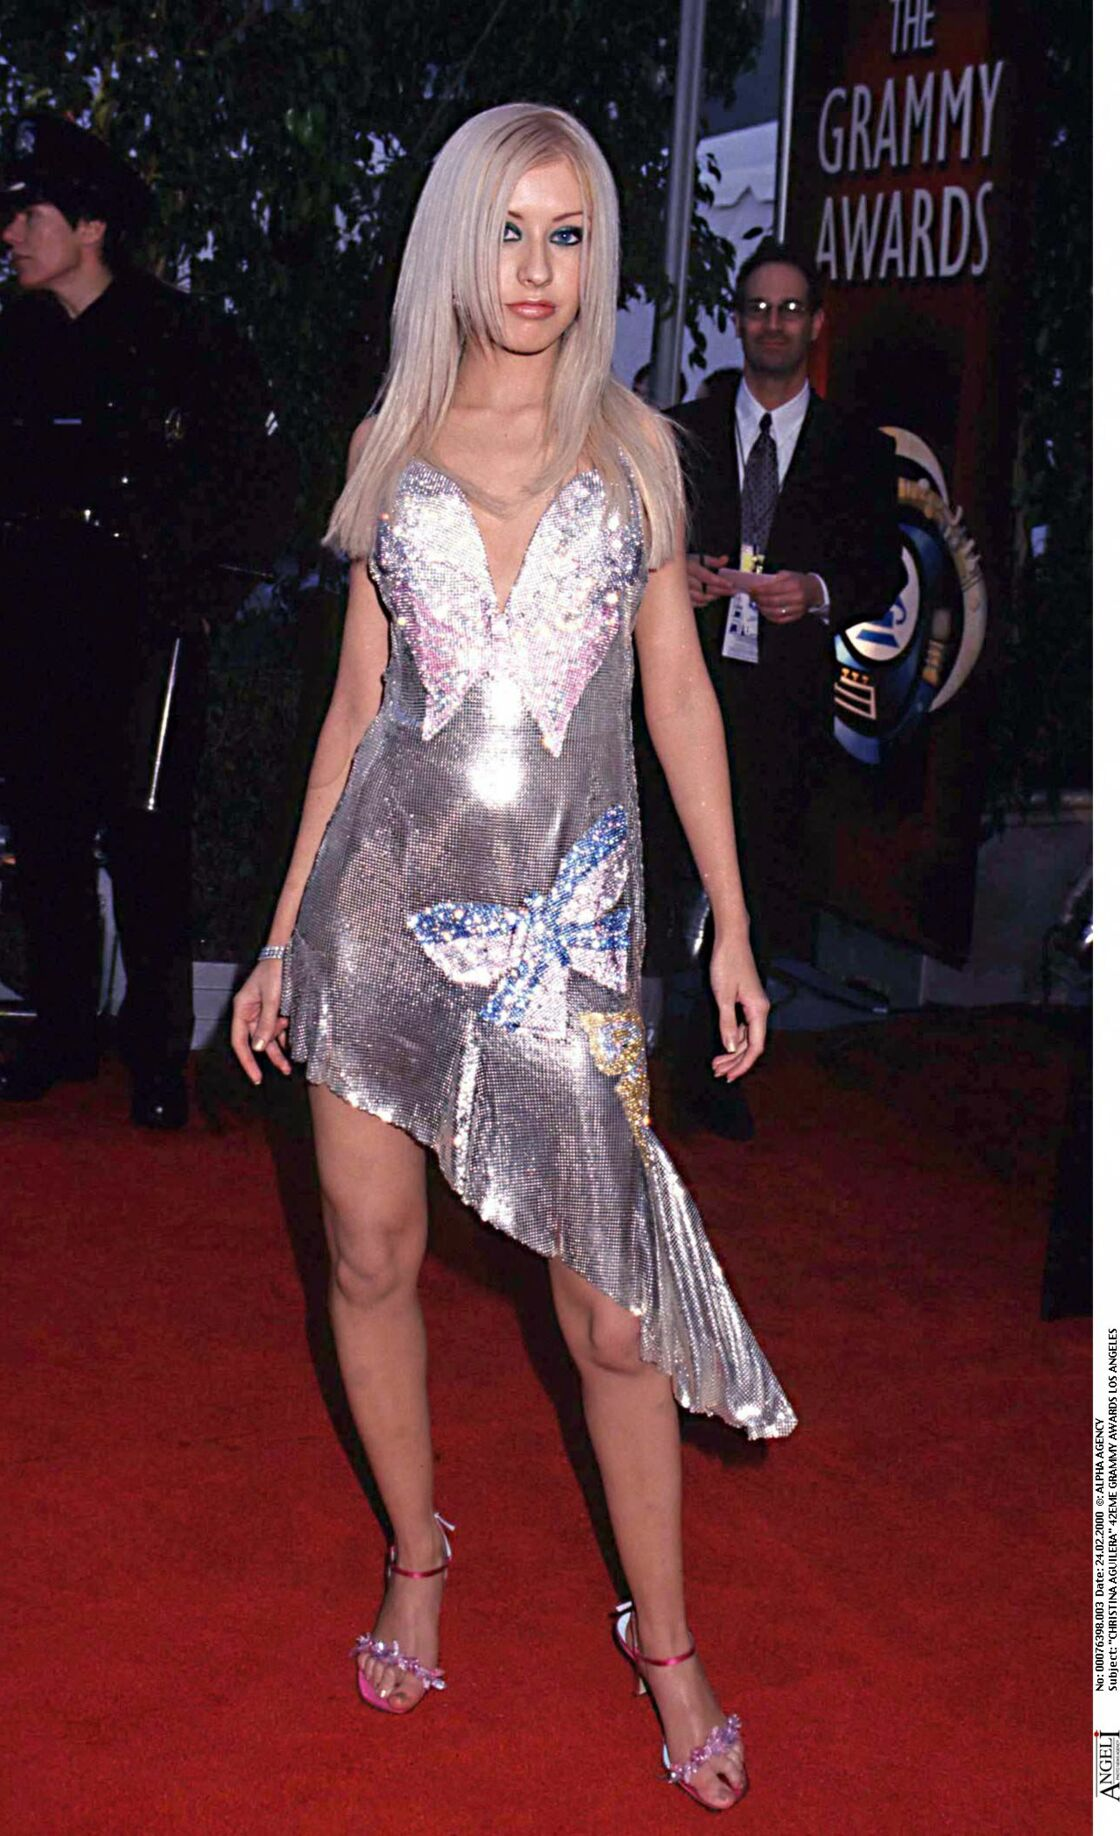 Christina Aguilera aux Grammy Awards 2000 en robe papillon